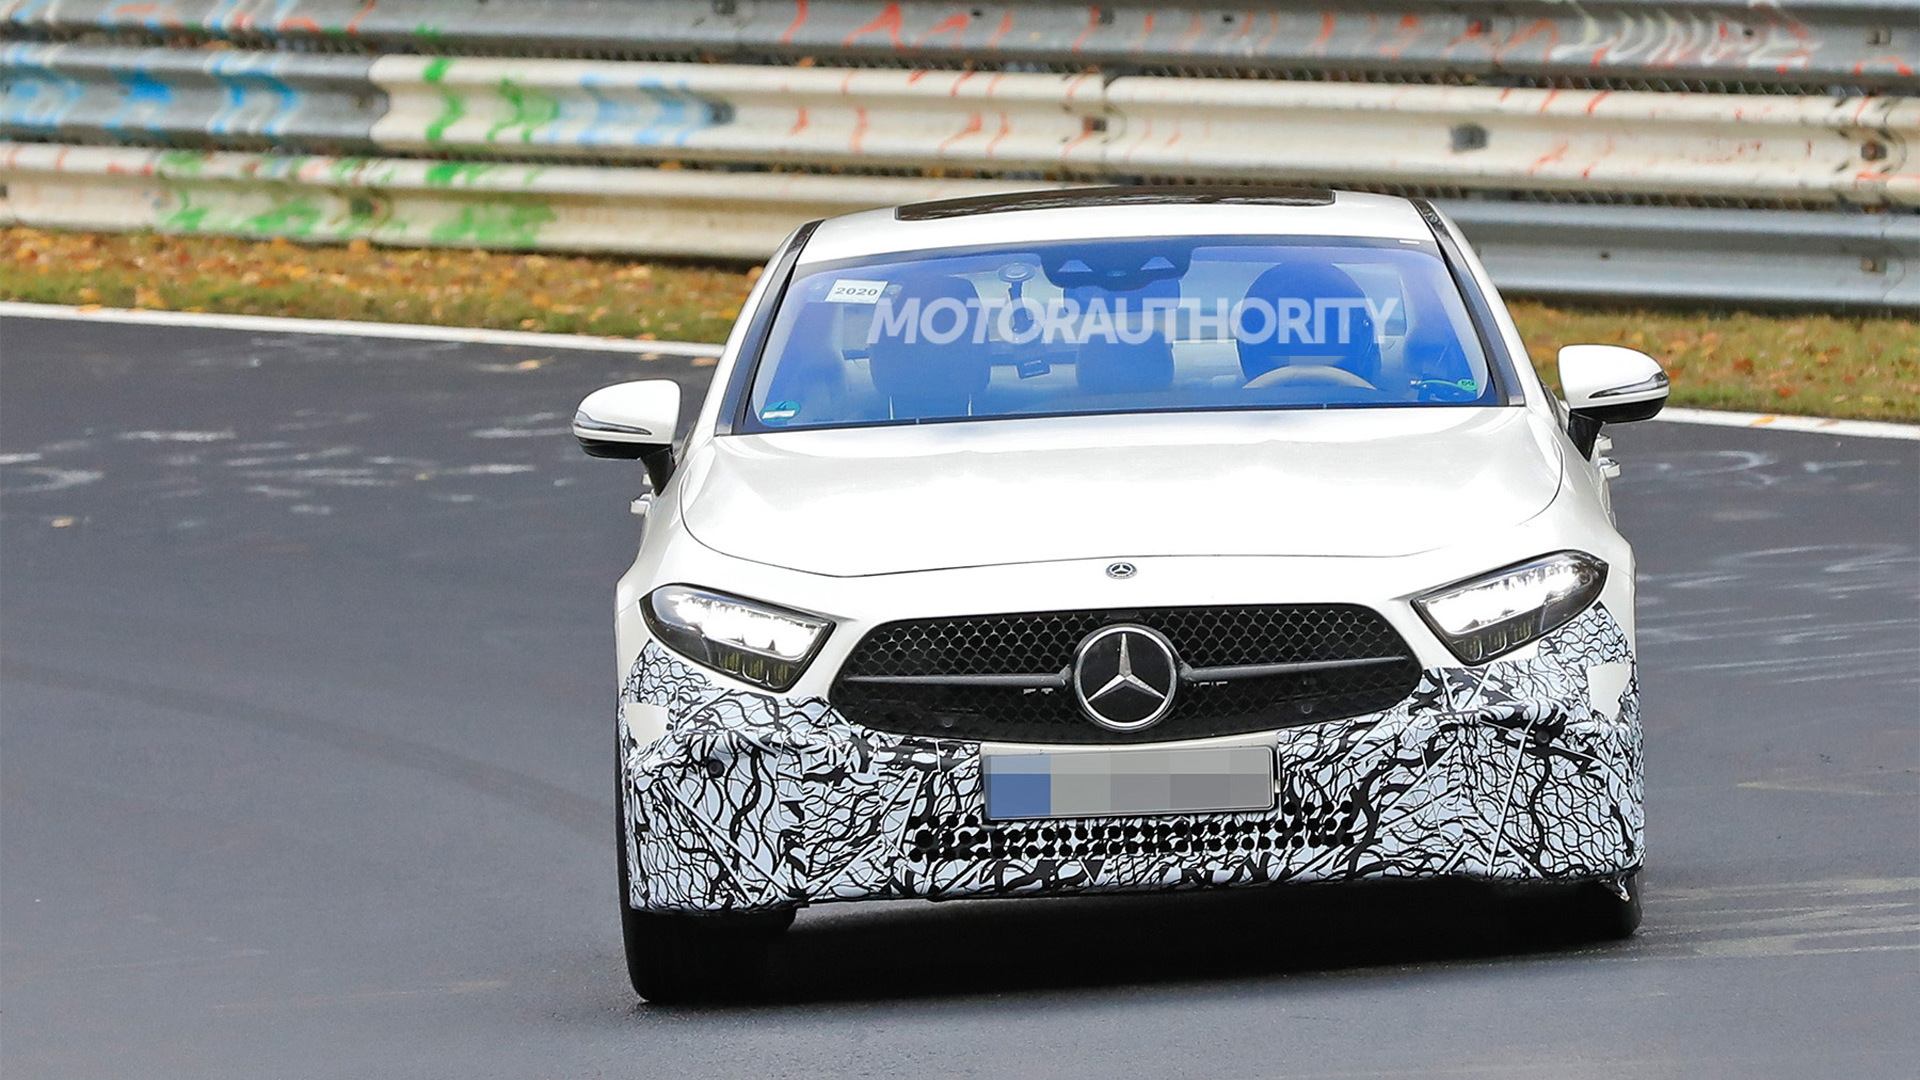 2022 Mercedes-Benz CLS-Class facelift spy shots - Photo credit: S. Baldauf/SB-Medien